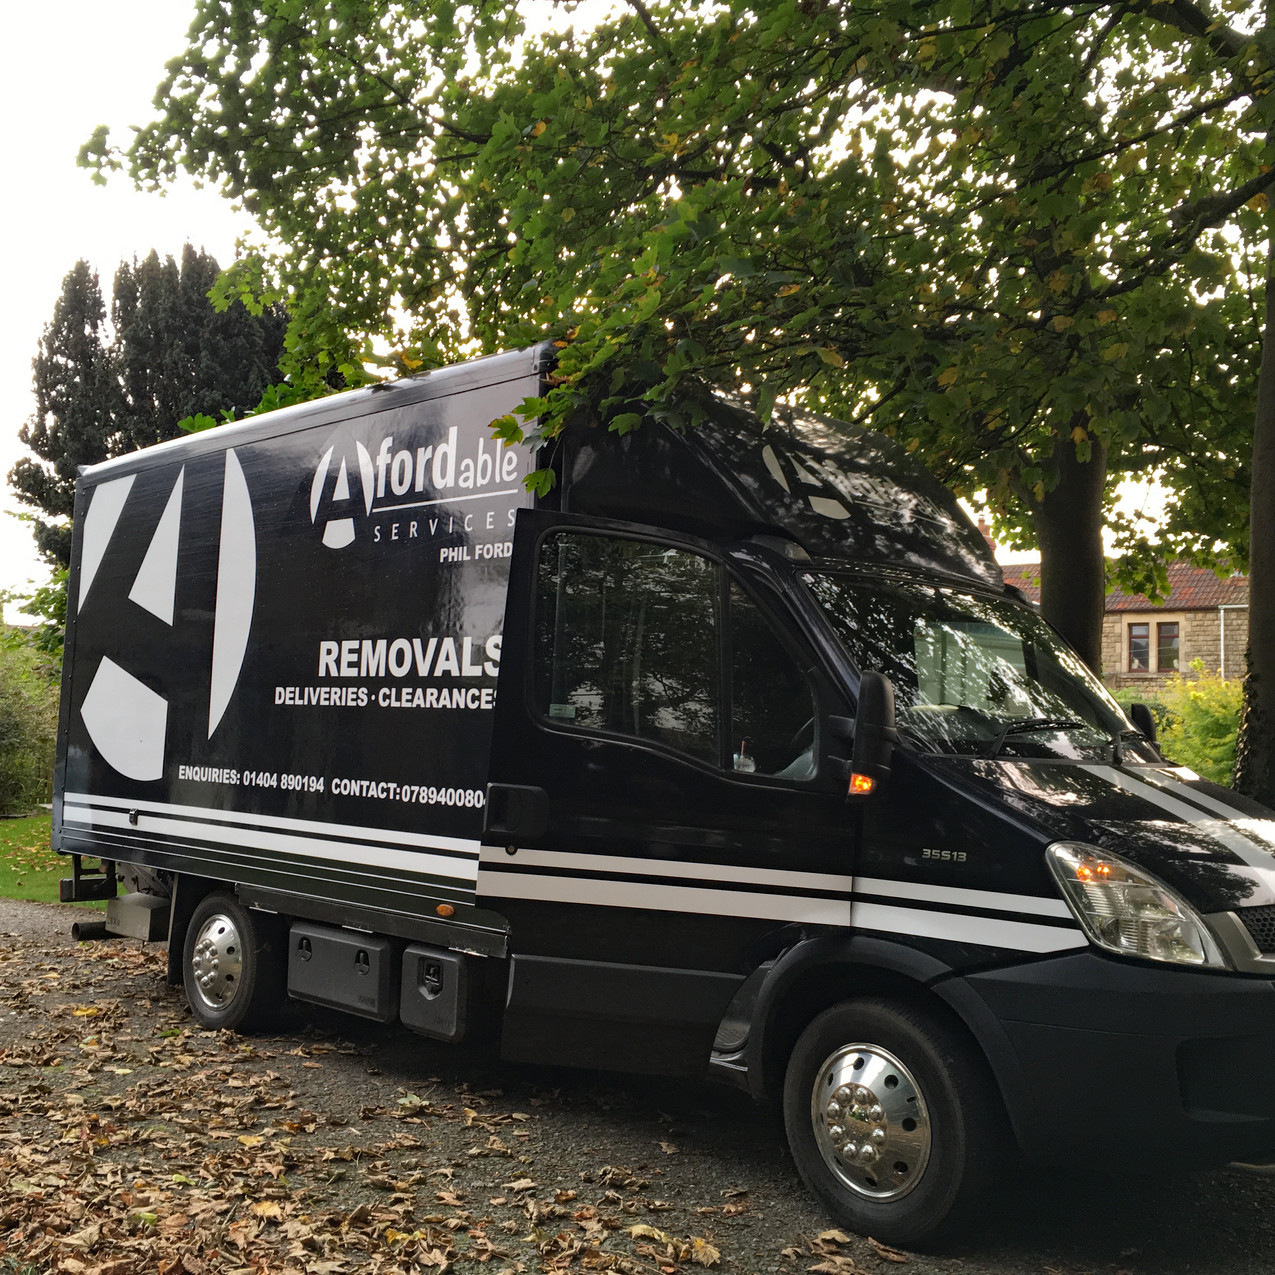 Removals from Bath to Kingsbridge.